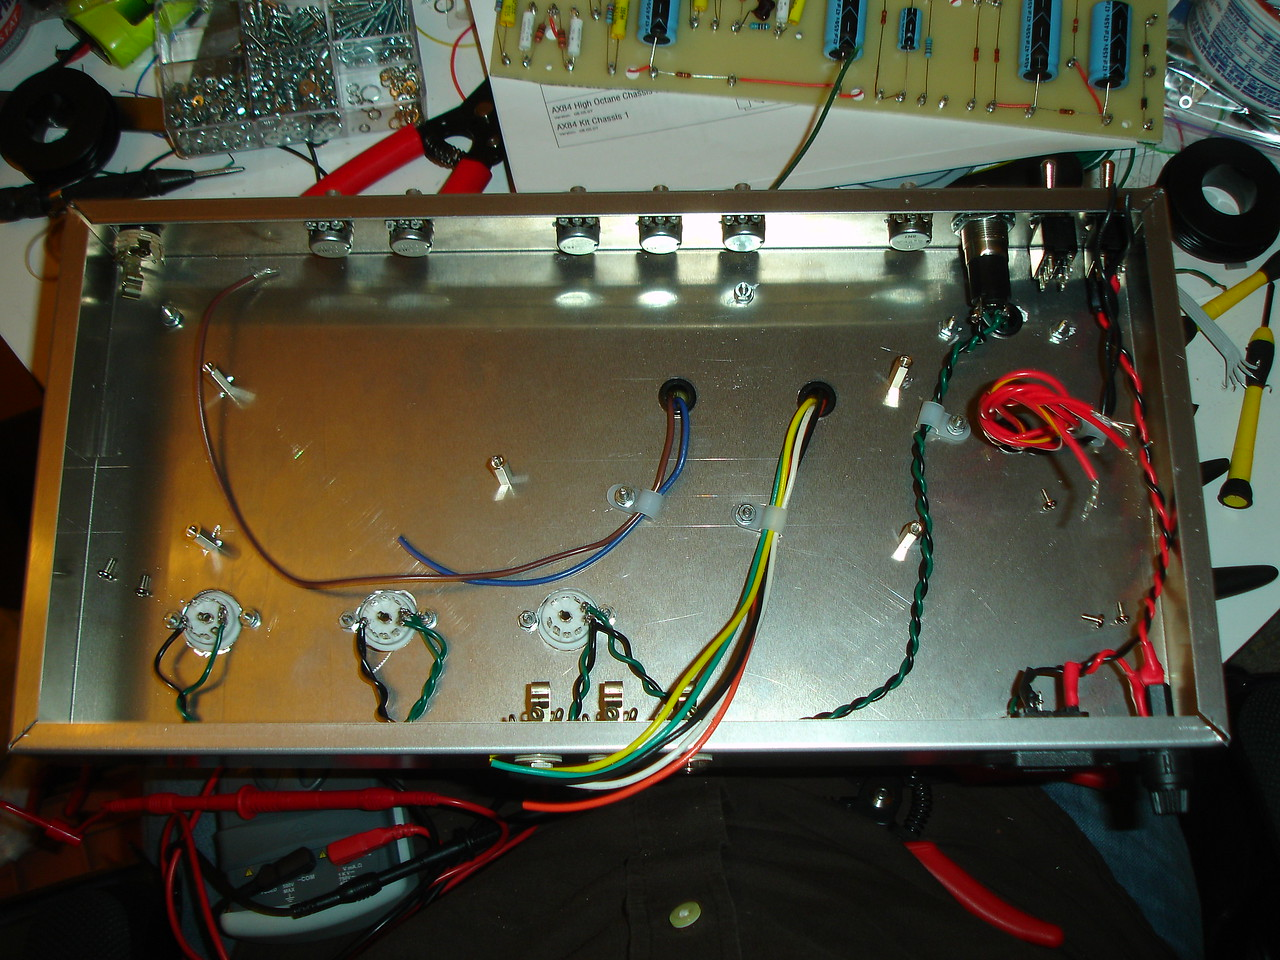 Routing wires in the chassis -- I really want to avoid the buzz/hum that my first (hi-fi) tube amp suffered from, so I'm being very careful about lead dress this time